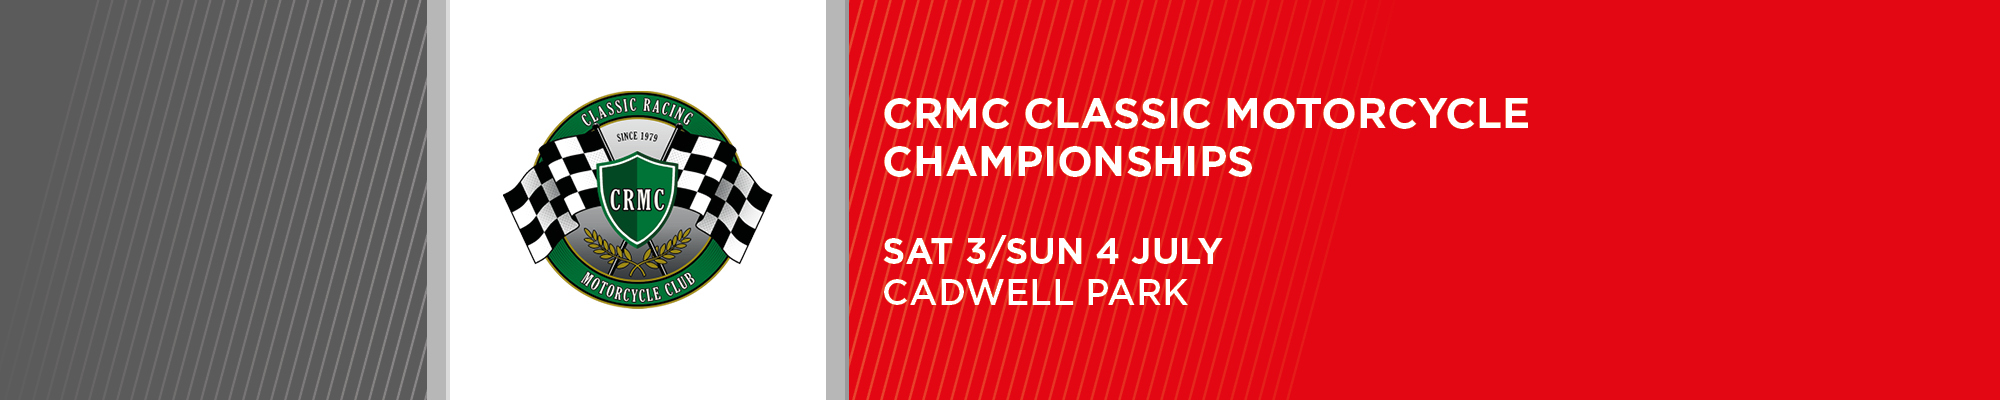 CRMC Classic Motorcycle Championships